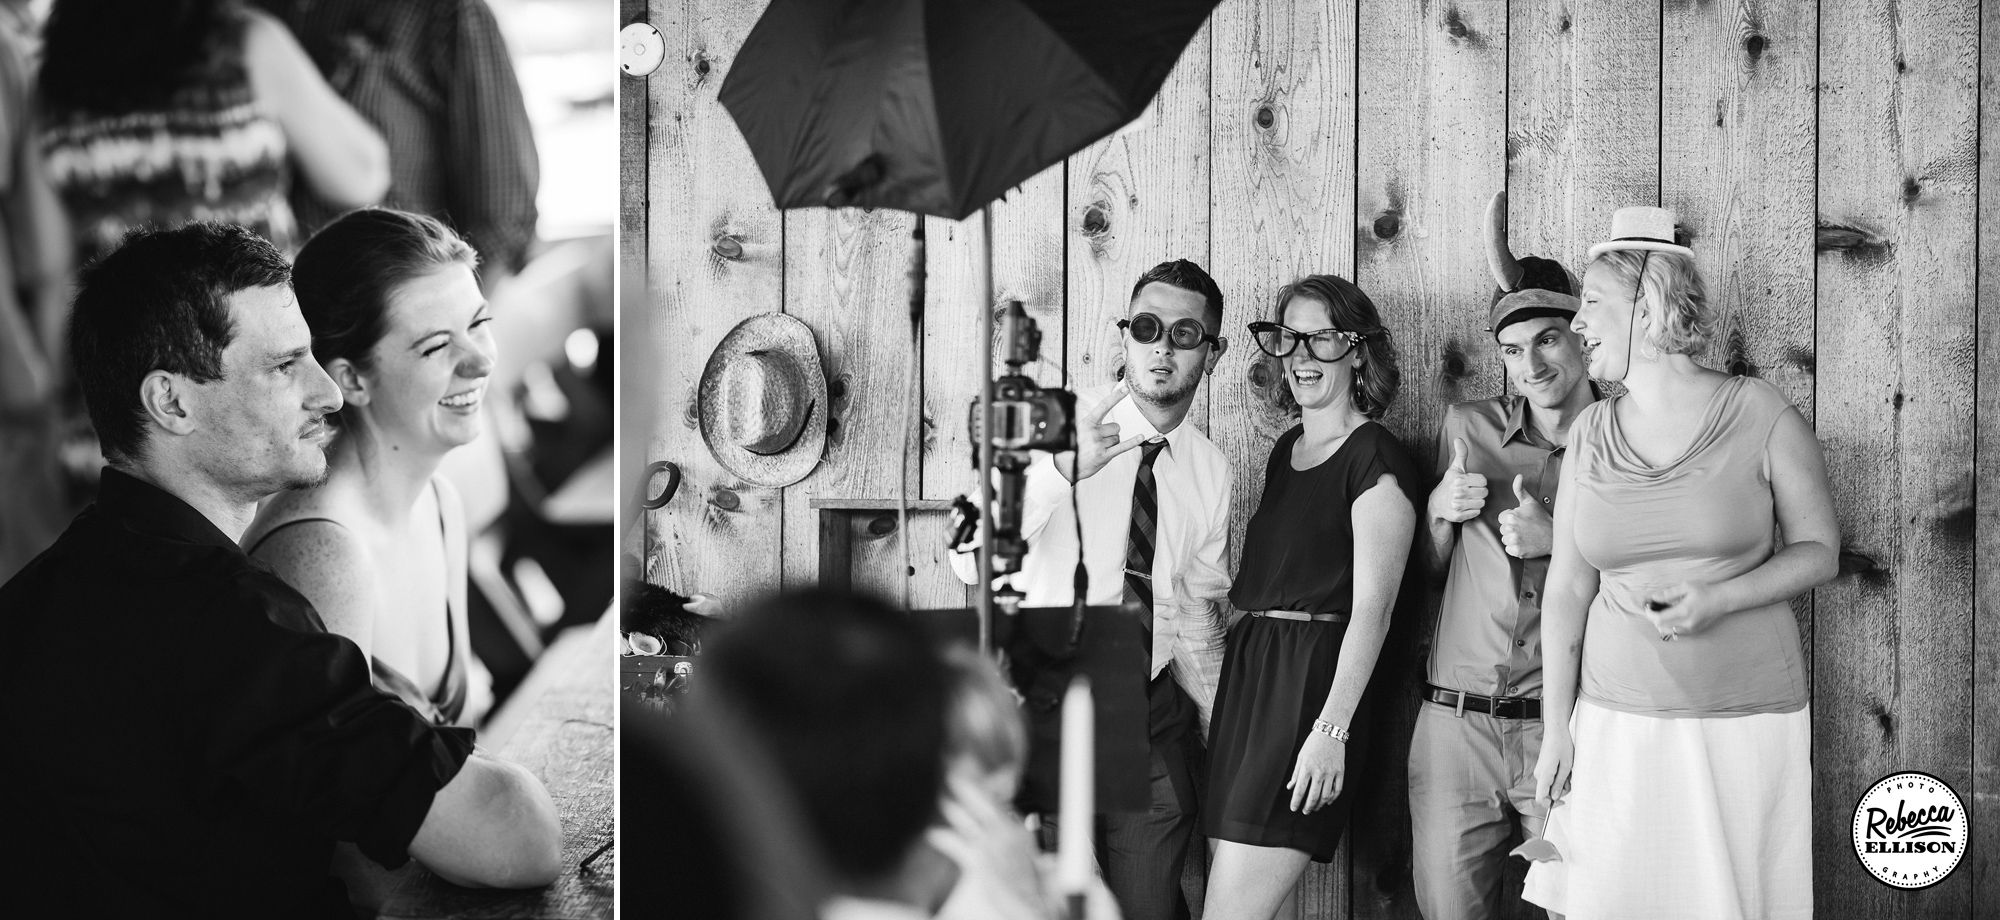 Wedding guests pose in a photo booth at an intimate beachfront wedding